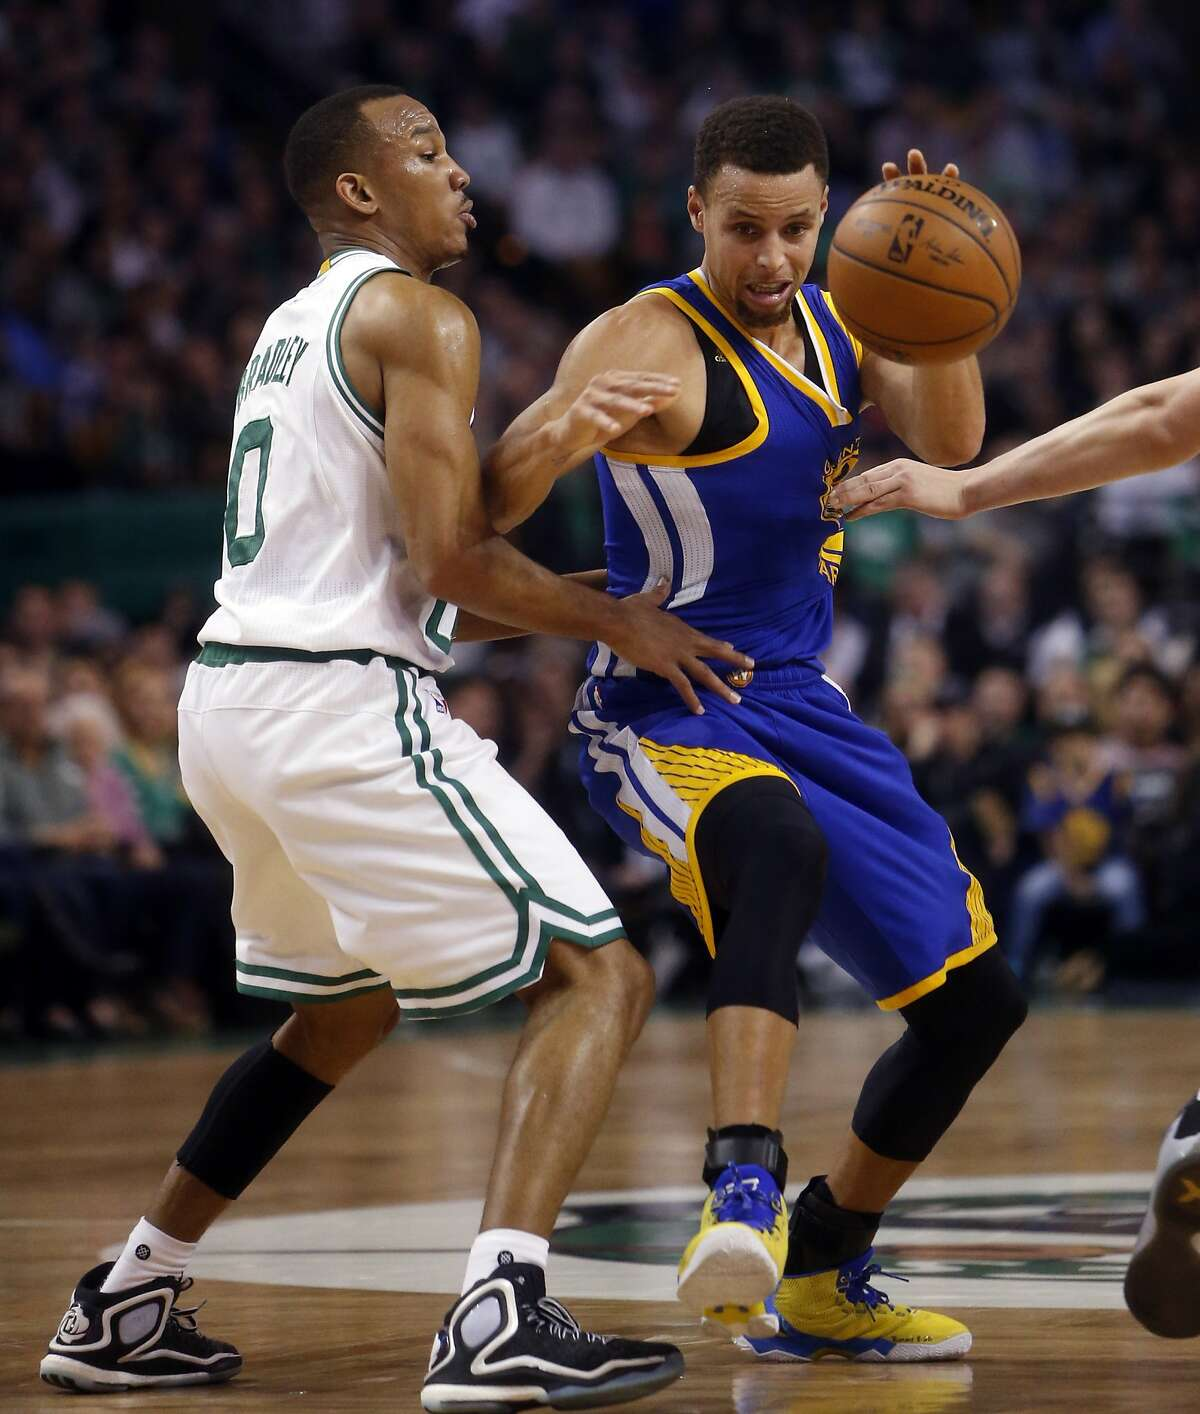 Golden State Warriors' Stephen Curry is guarded by Boston Celtics' Avery Bradley in 2nd quarter during NBA game at TD Garden in Boston, Massachusetts on Friday, December 11, 2015.